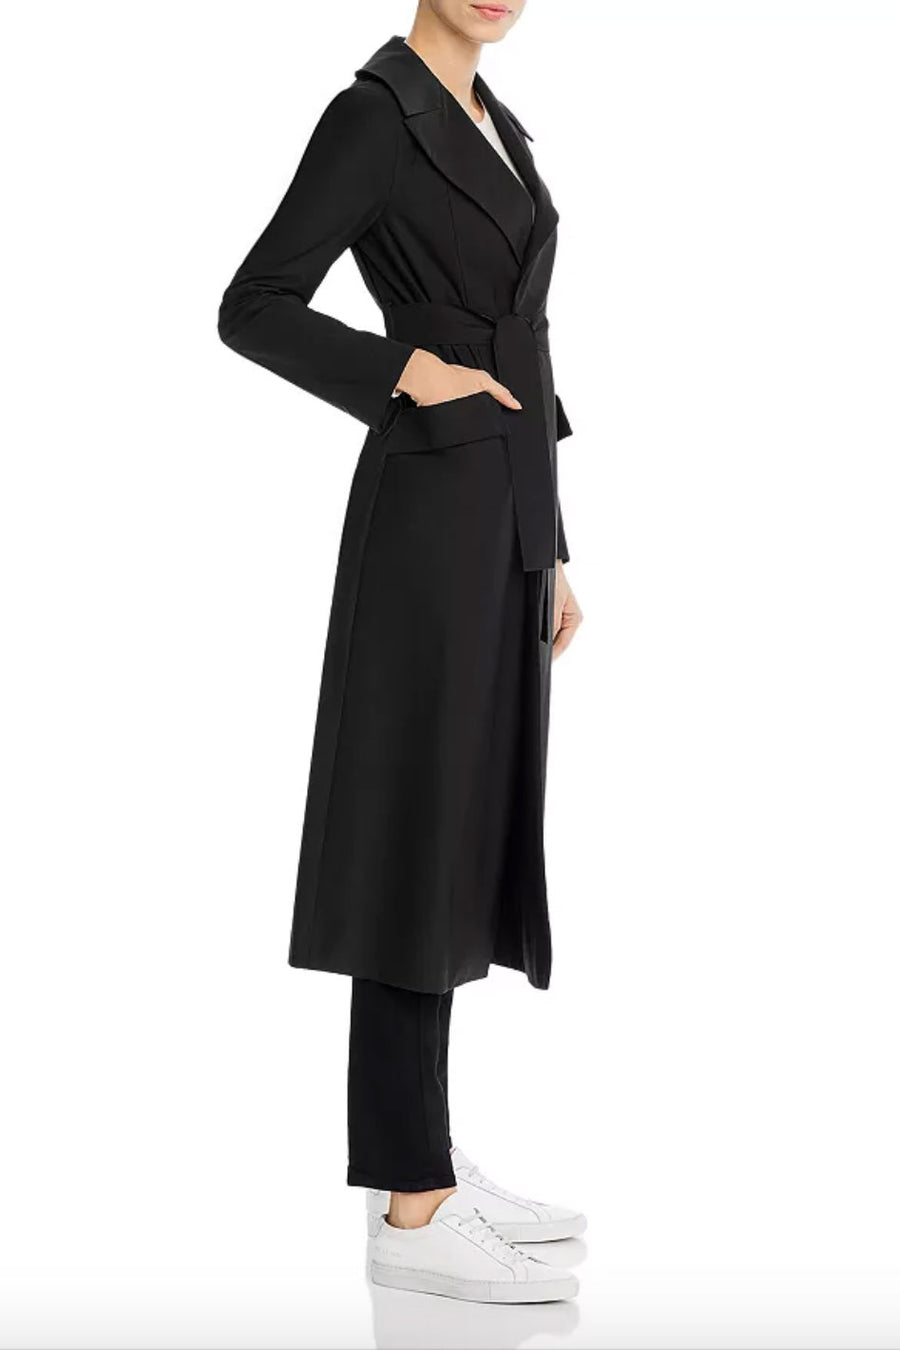 Light Technic Flap Pocket Duster Coat - Black - Pavilion